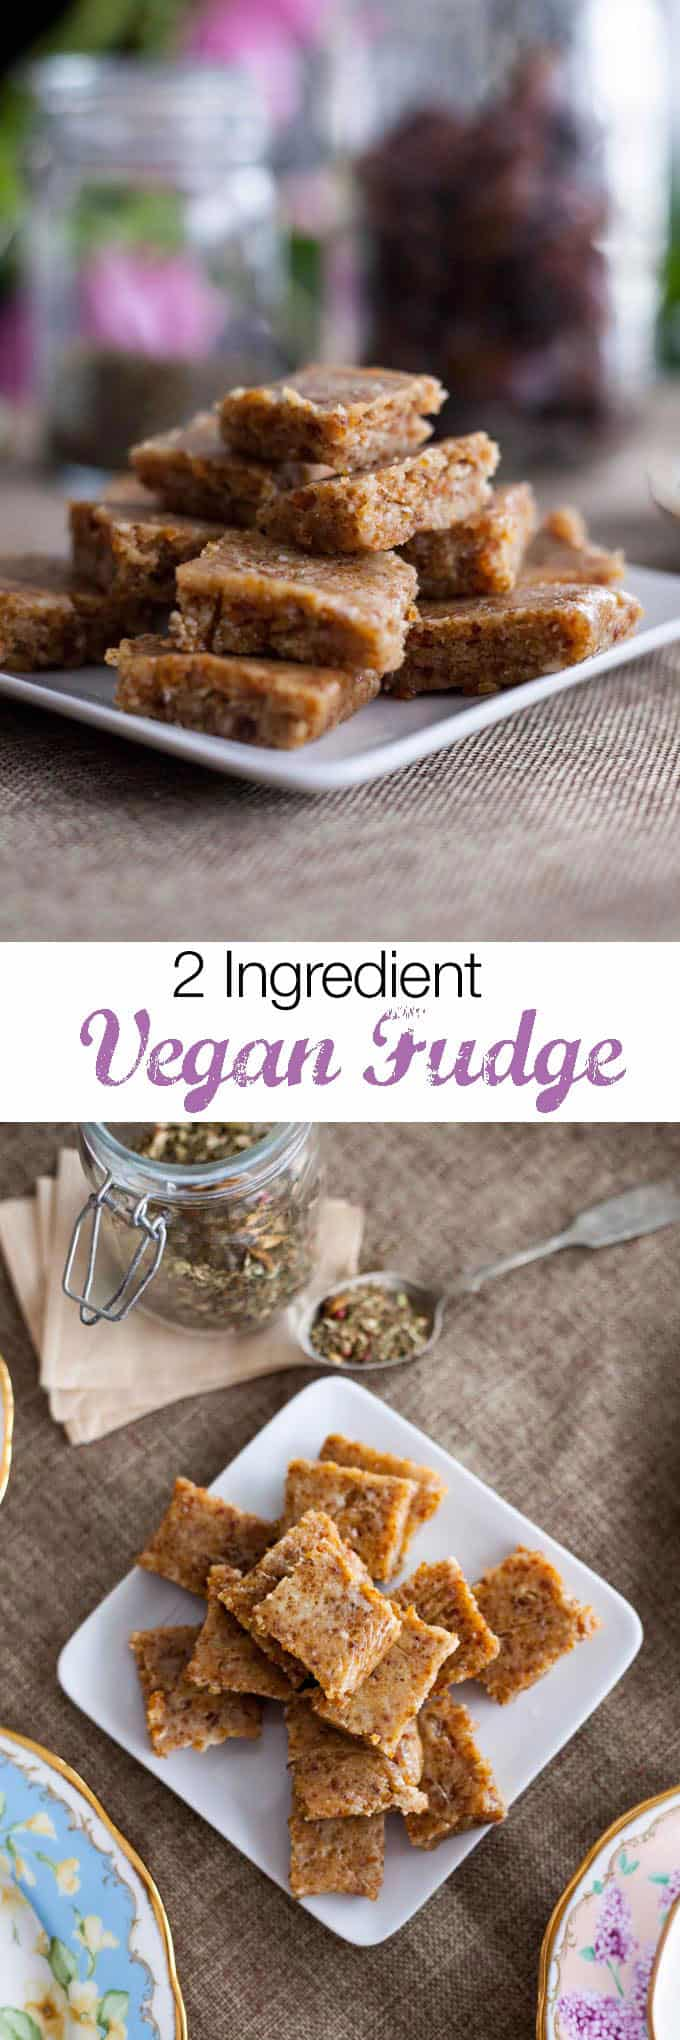 Easy raw vegan fudge recipe